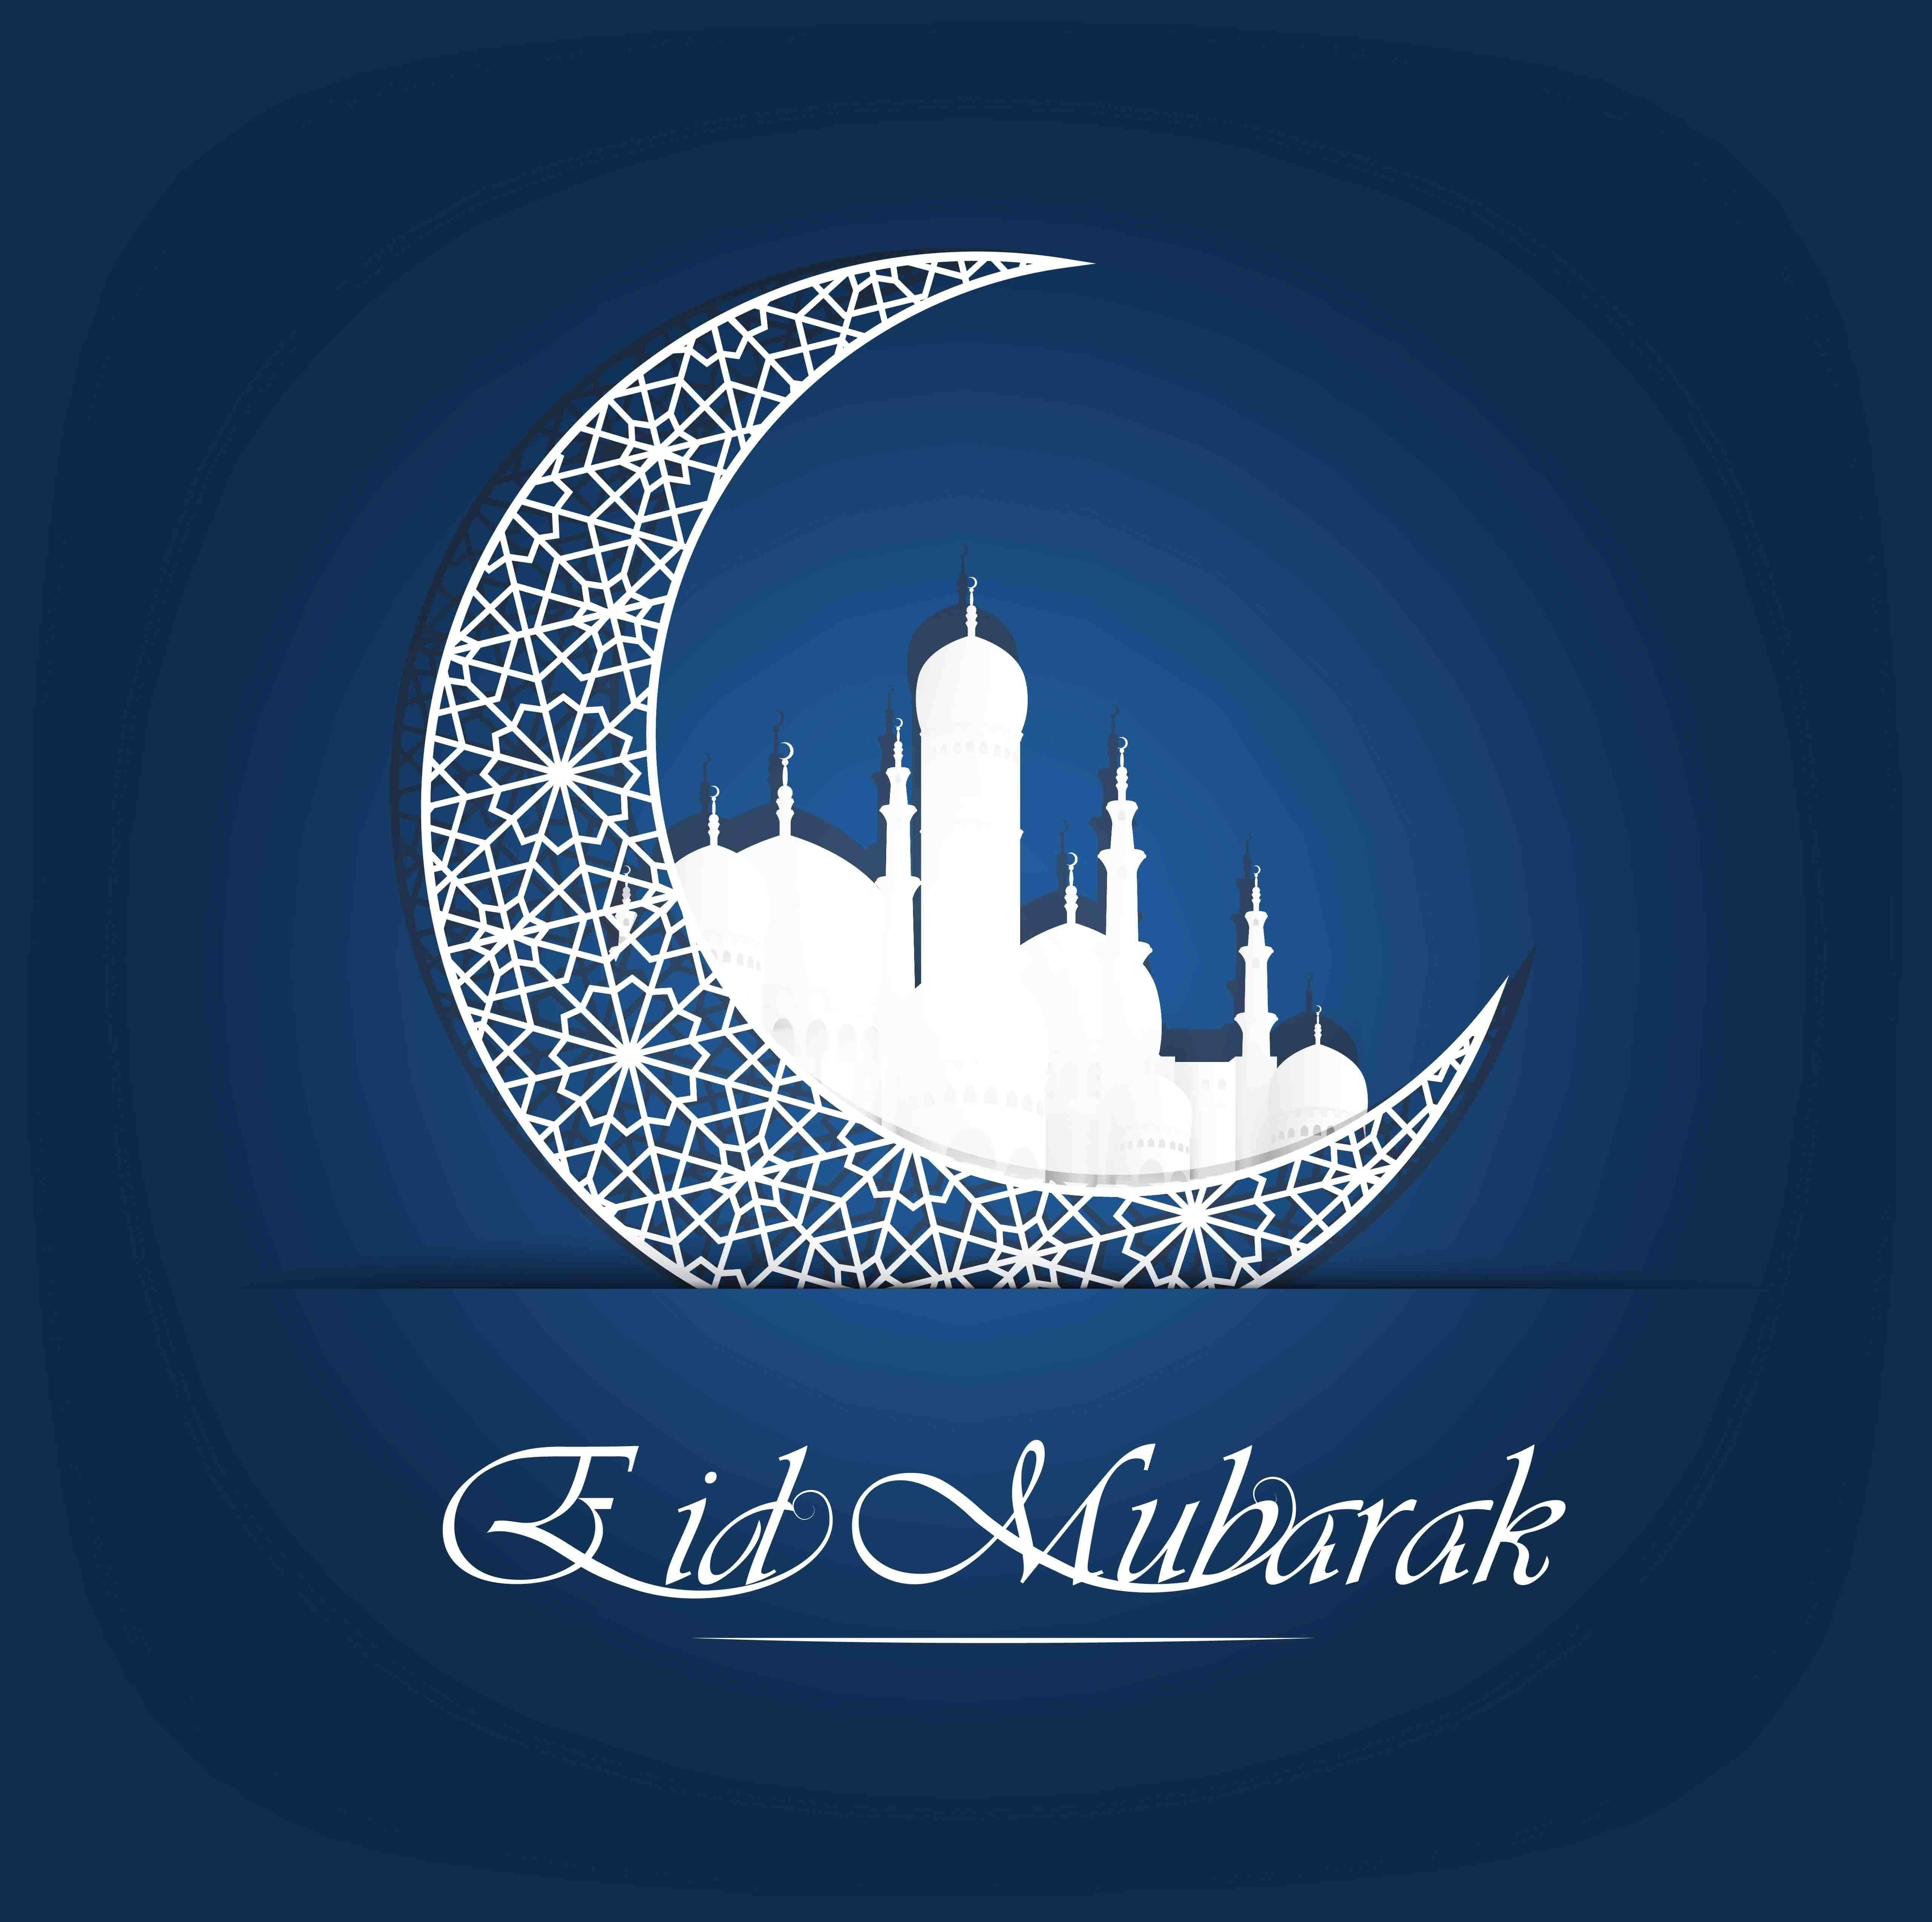 Eid Mubarakh Whatsapp Profile Pictures With Happy Eid Al Fitr